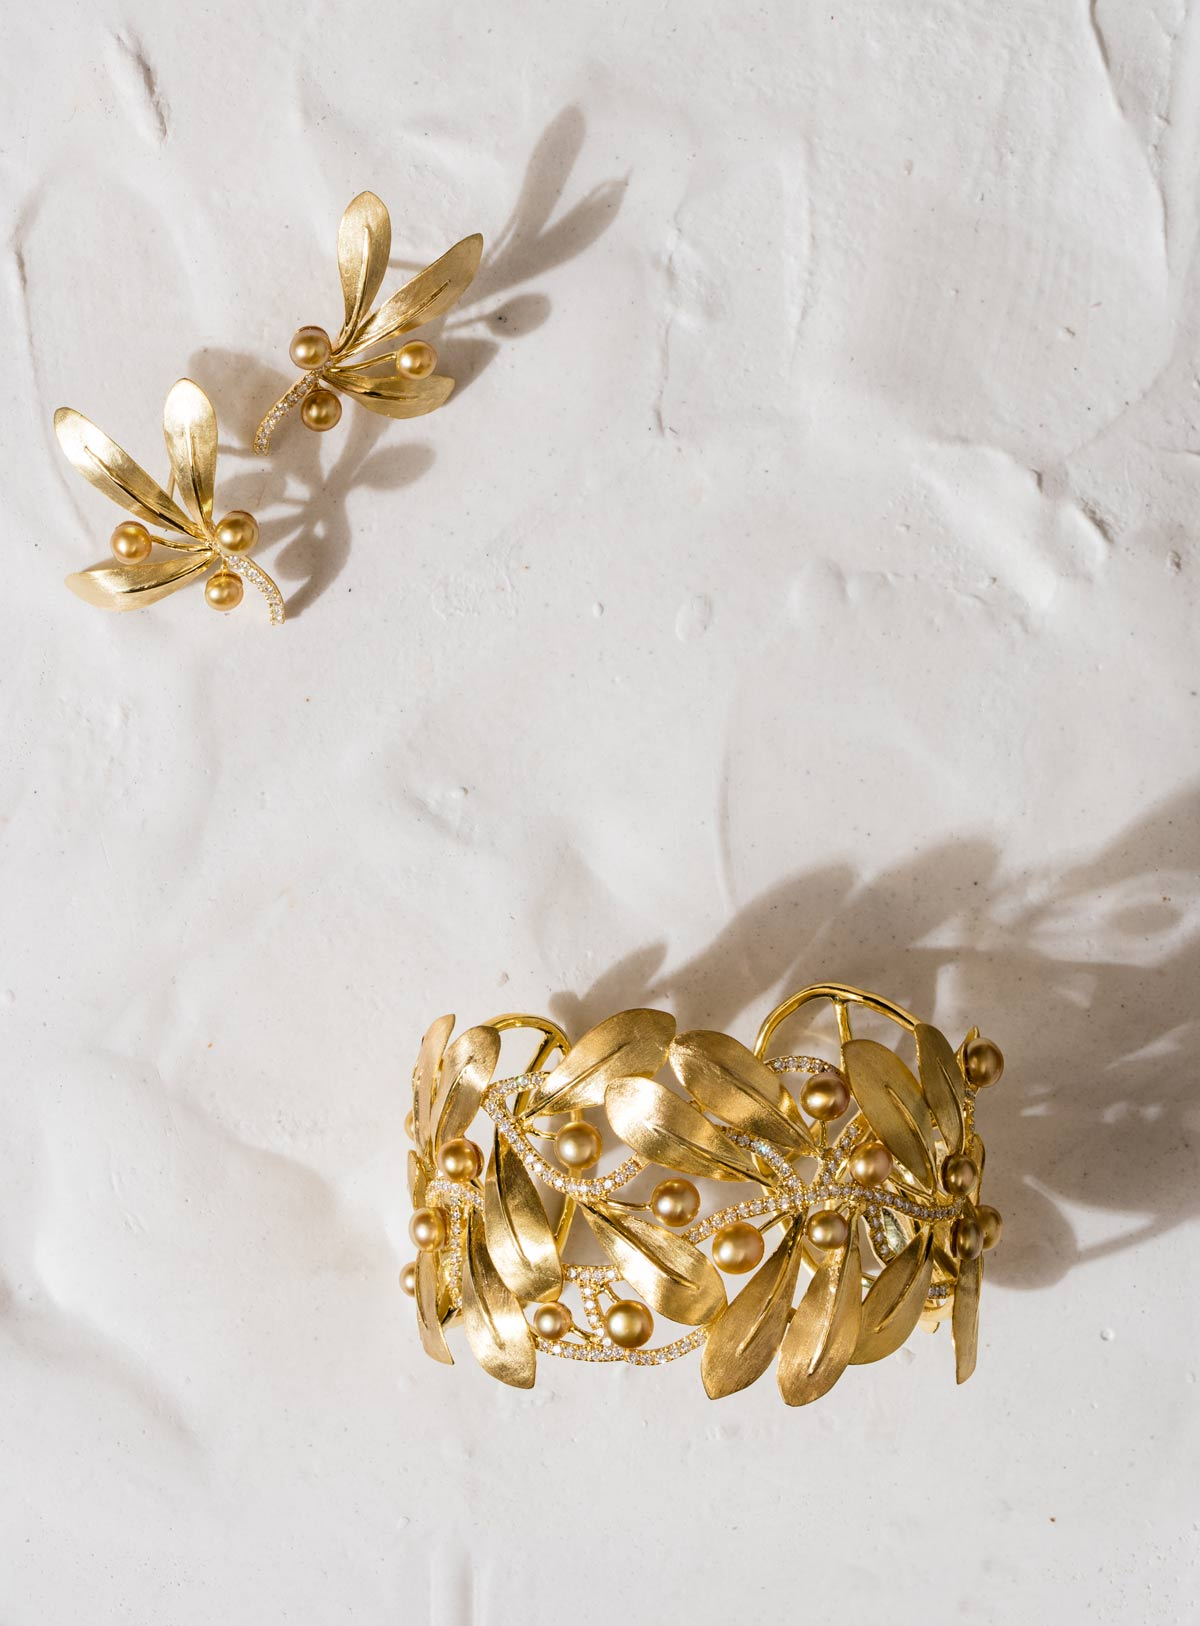 webPaul-Syjuco-bangle-and-earrings-of-gold-leaves-golden-keshi-and-diamonds